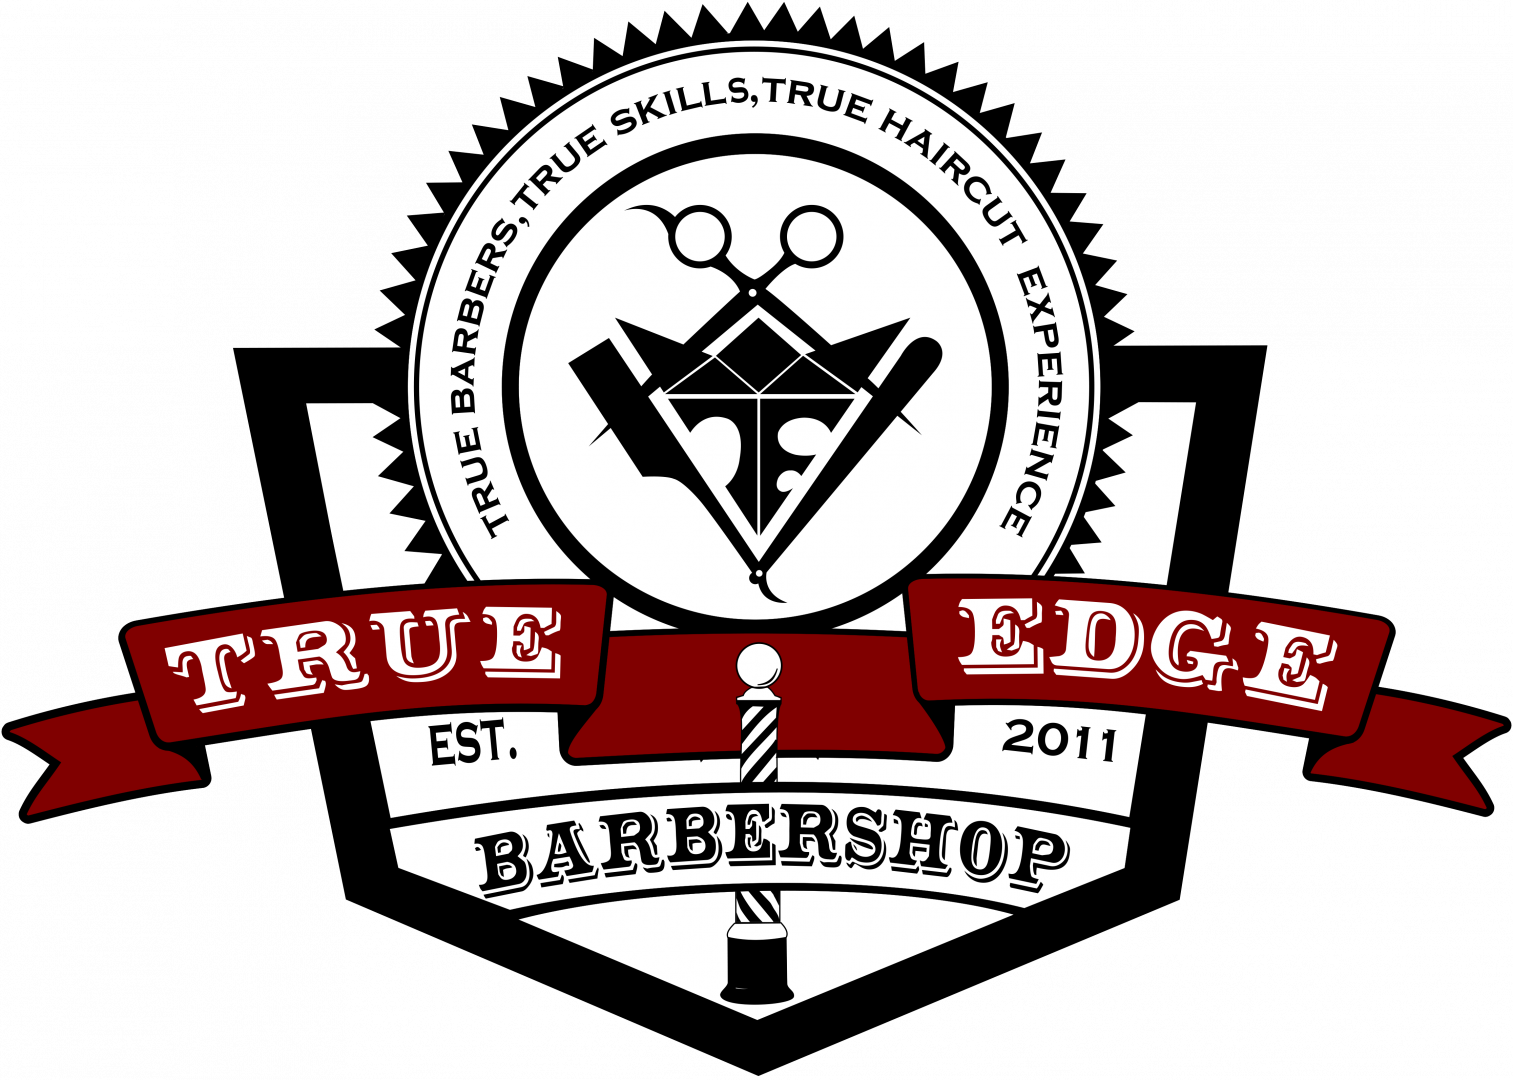 True Edge Barbershop